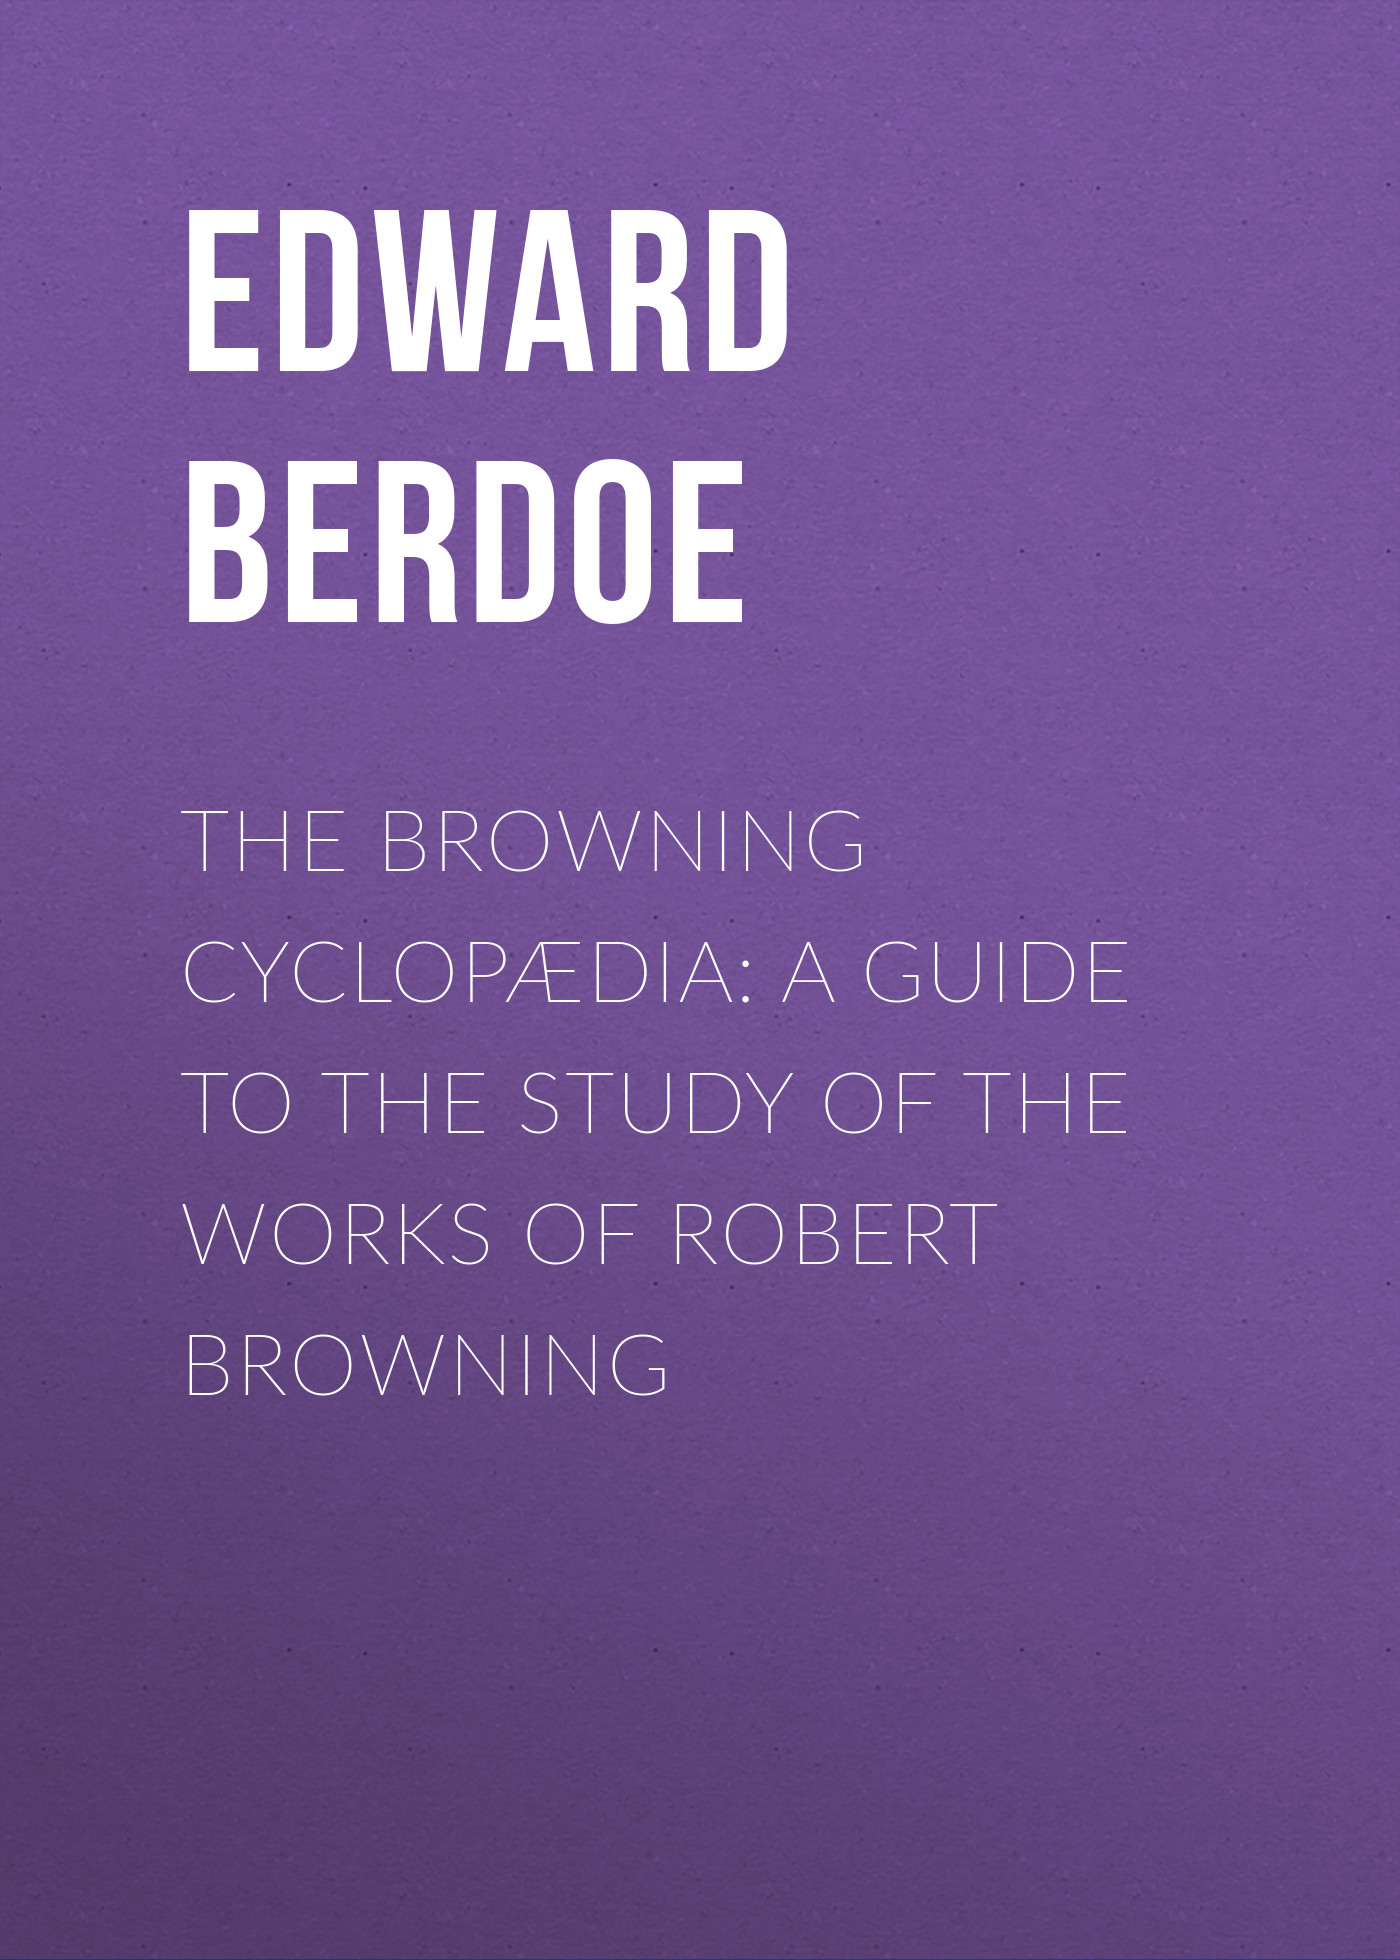 Edward Berdoe The Browning Cyclopædia: A Guide to the Study of the Works of Robert Browning